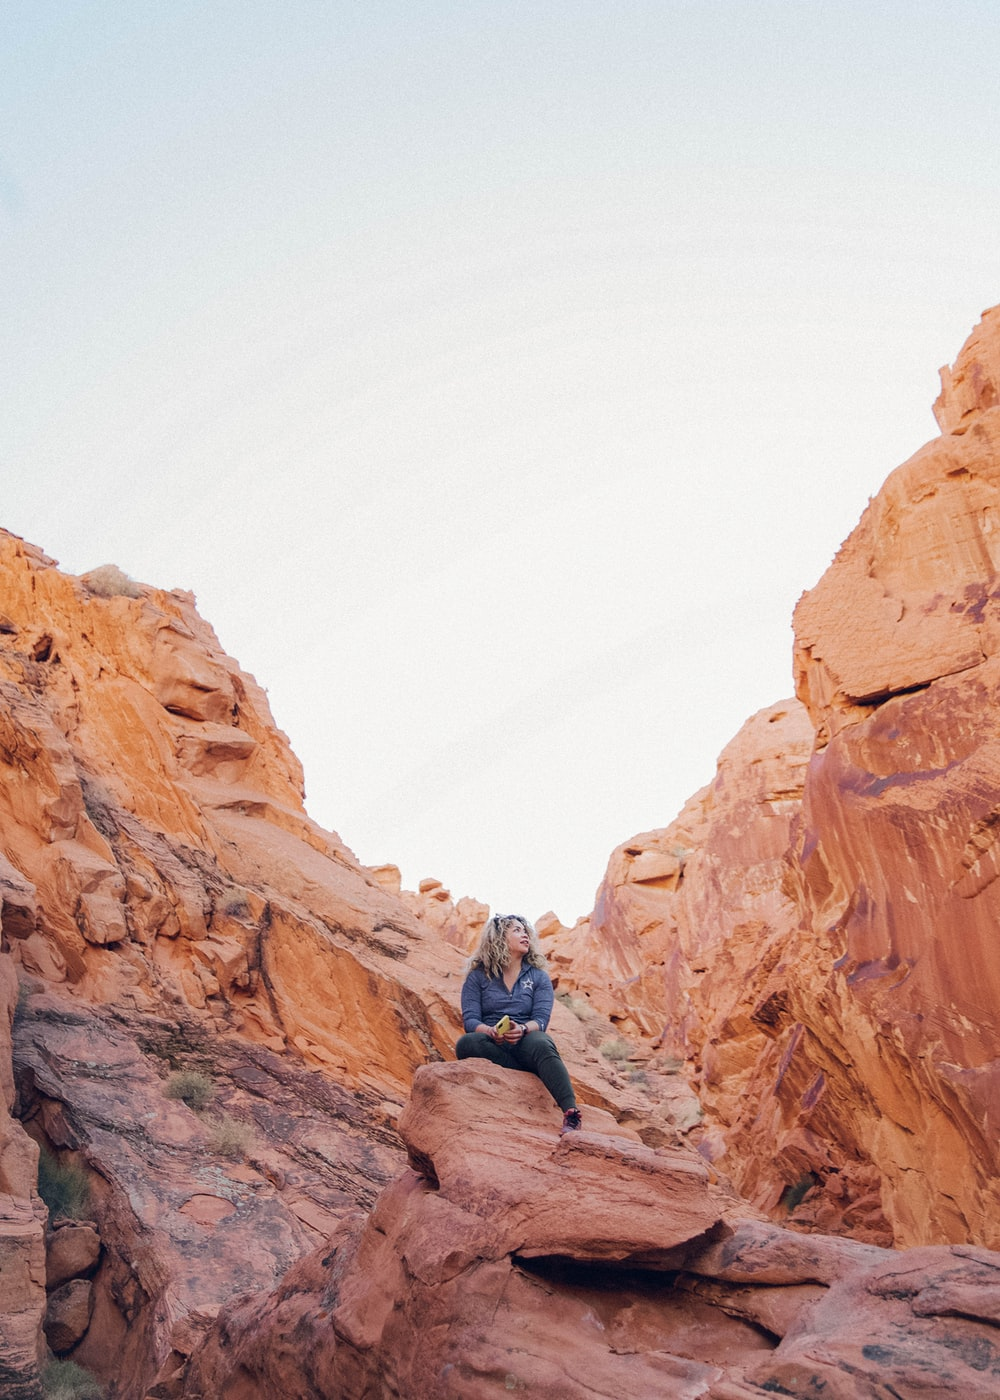 man in blue jacket and black pants sitting on brown rock formation during daytime